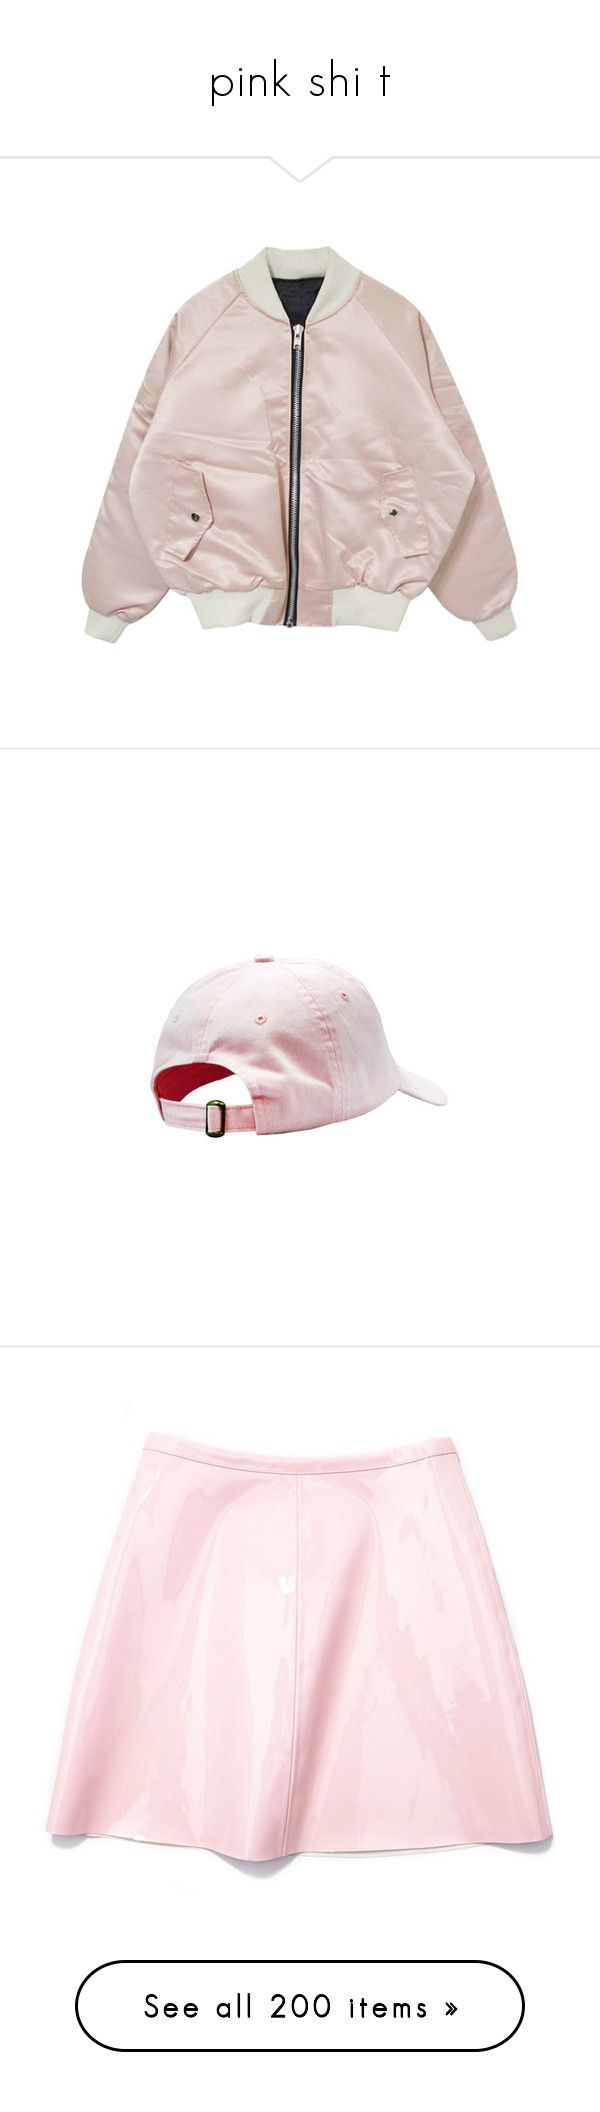 """""""pink shi t"""" by child-of-jove ❤ liked on Polyvore featuring outerwear, jackets, tops, coats & jackets, bomber jacket, pink flight jacket, blouson jacket, flight jackets, pink bomber jacket and accessories"""